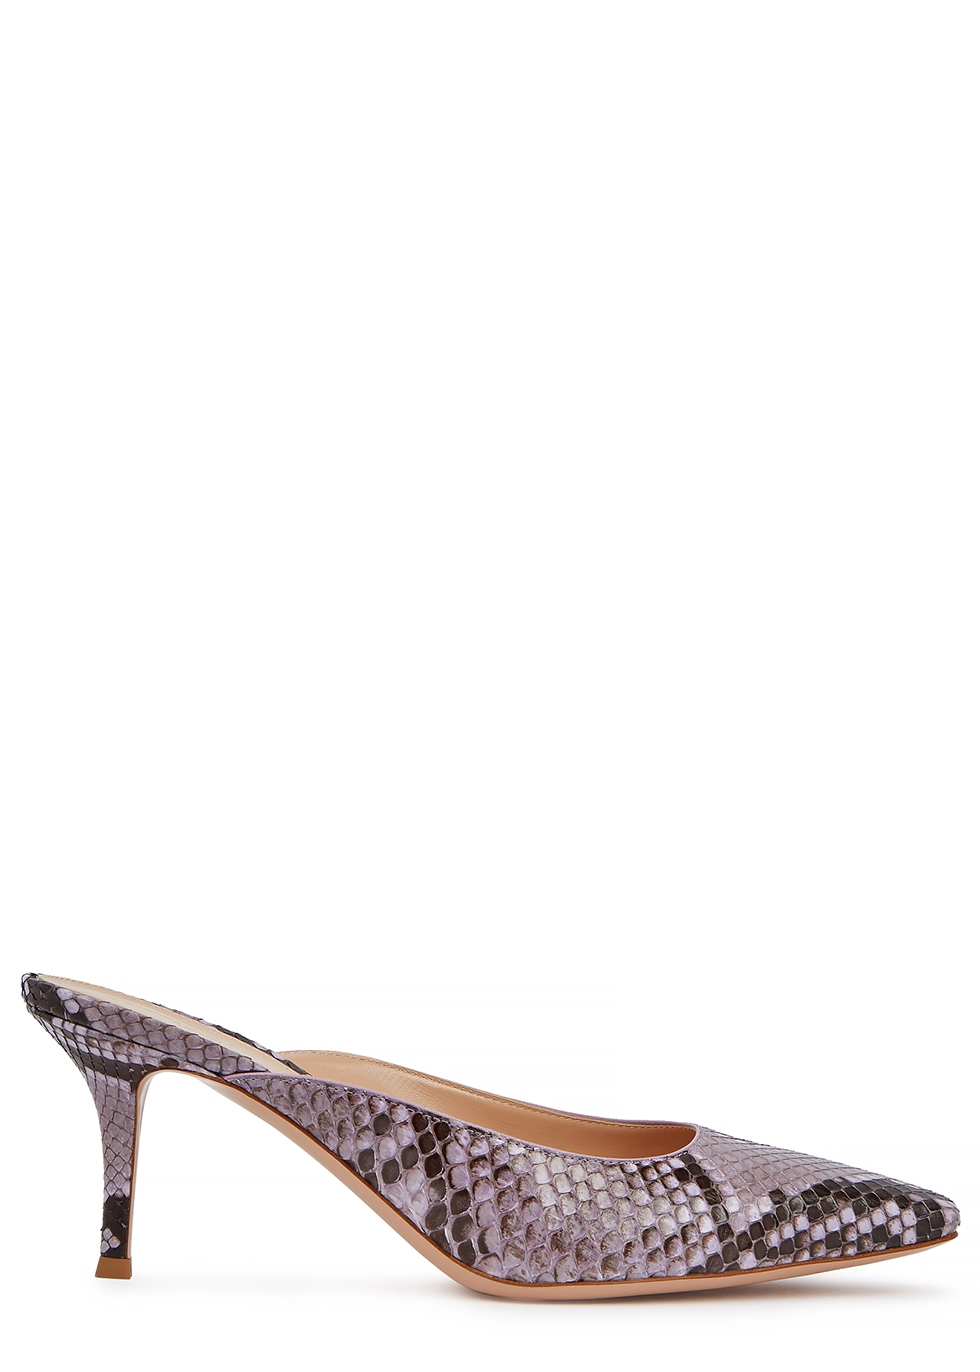 GIANVITO ROSSI | Gianvito Rossi Vitello 70 Python-Effect Leather Mules | Goxip